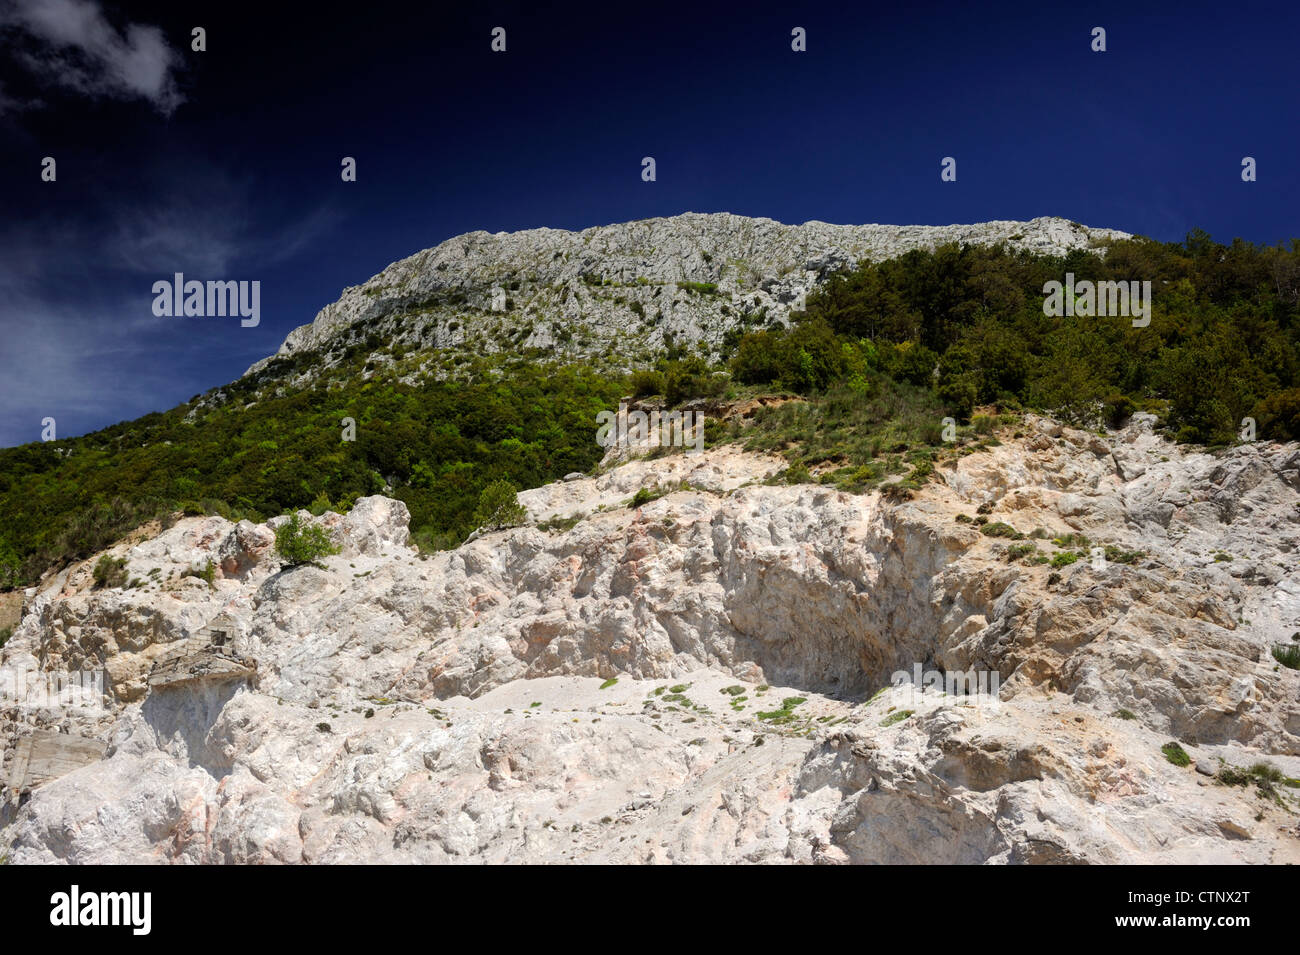 italy, basilicata, pollino national park, mount alpi, marble quarry - Stock Image